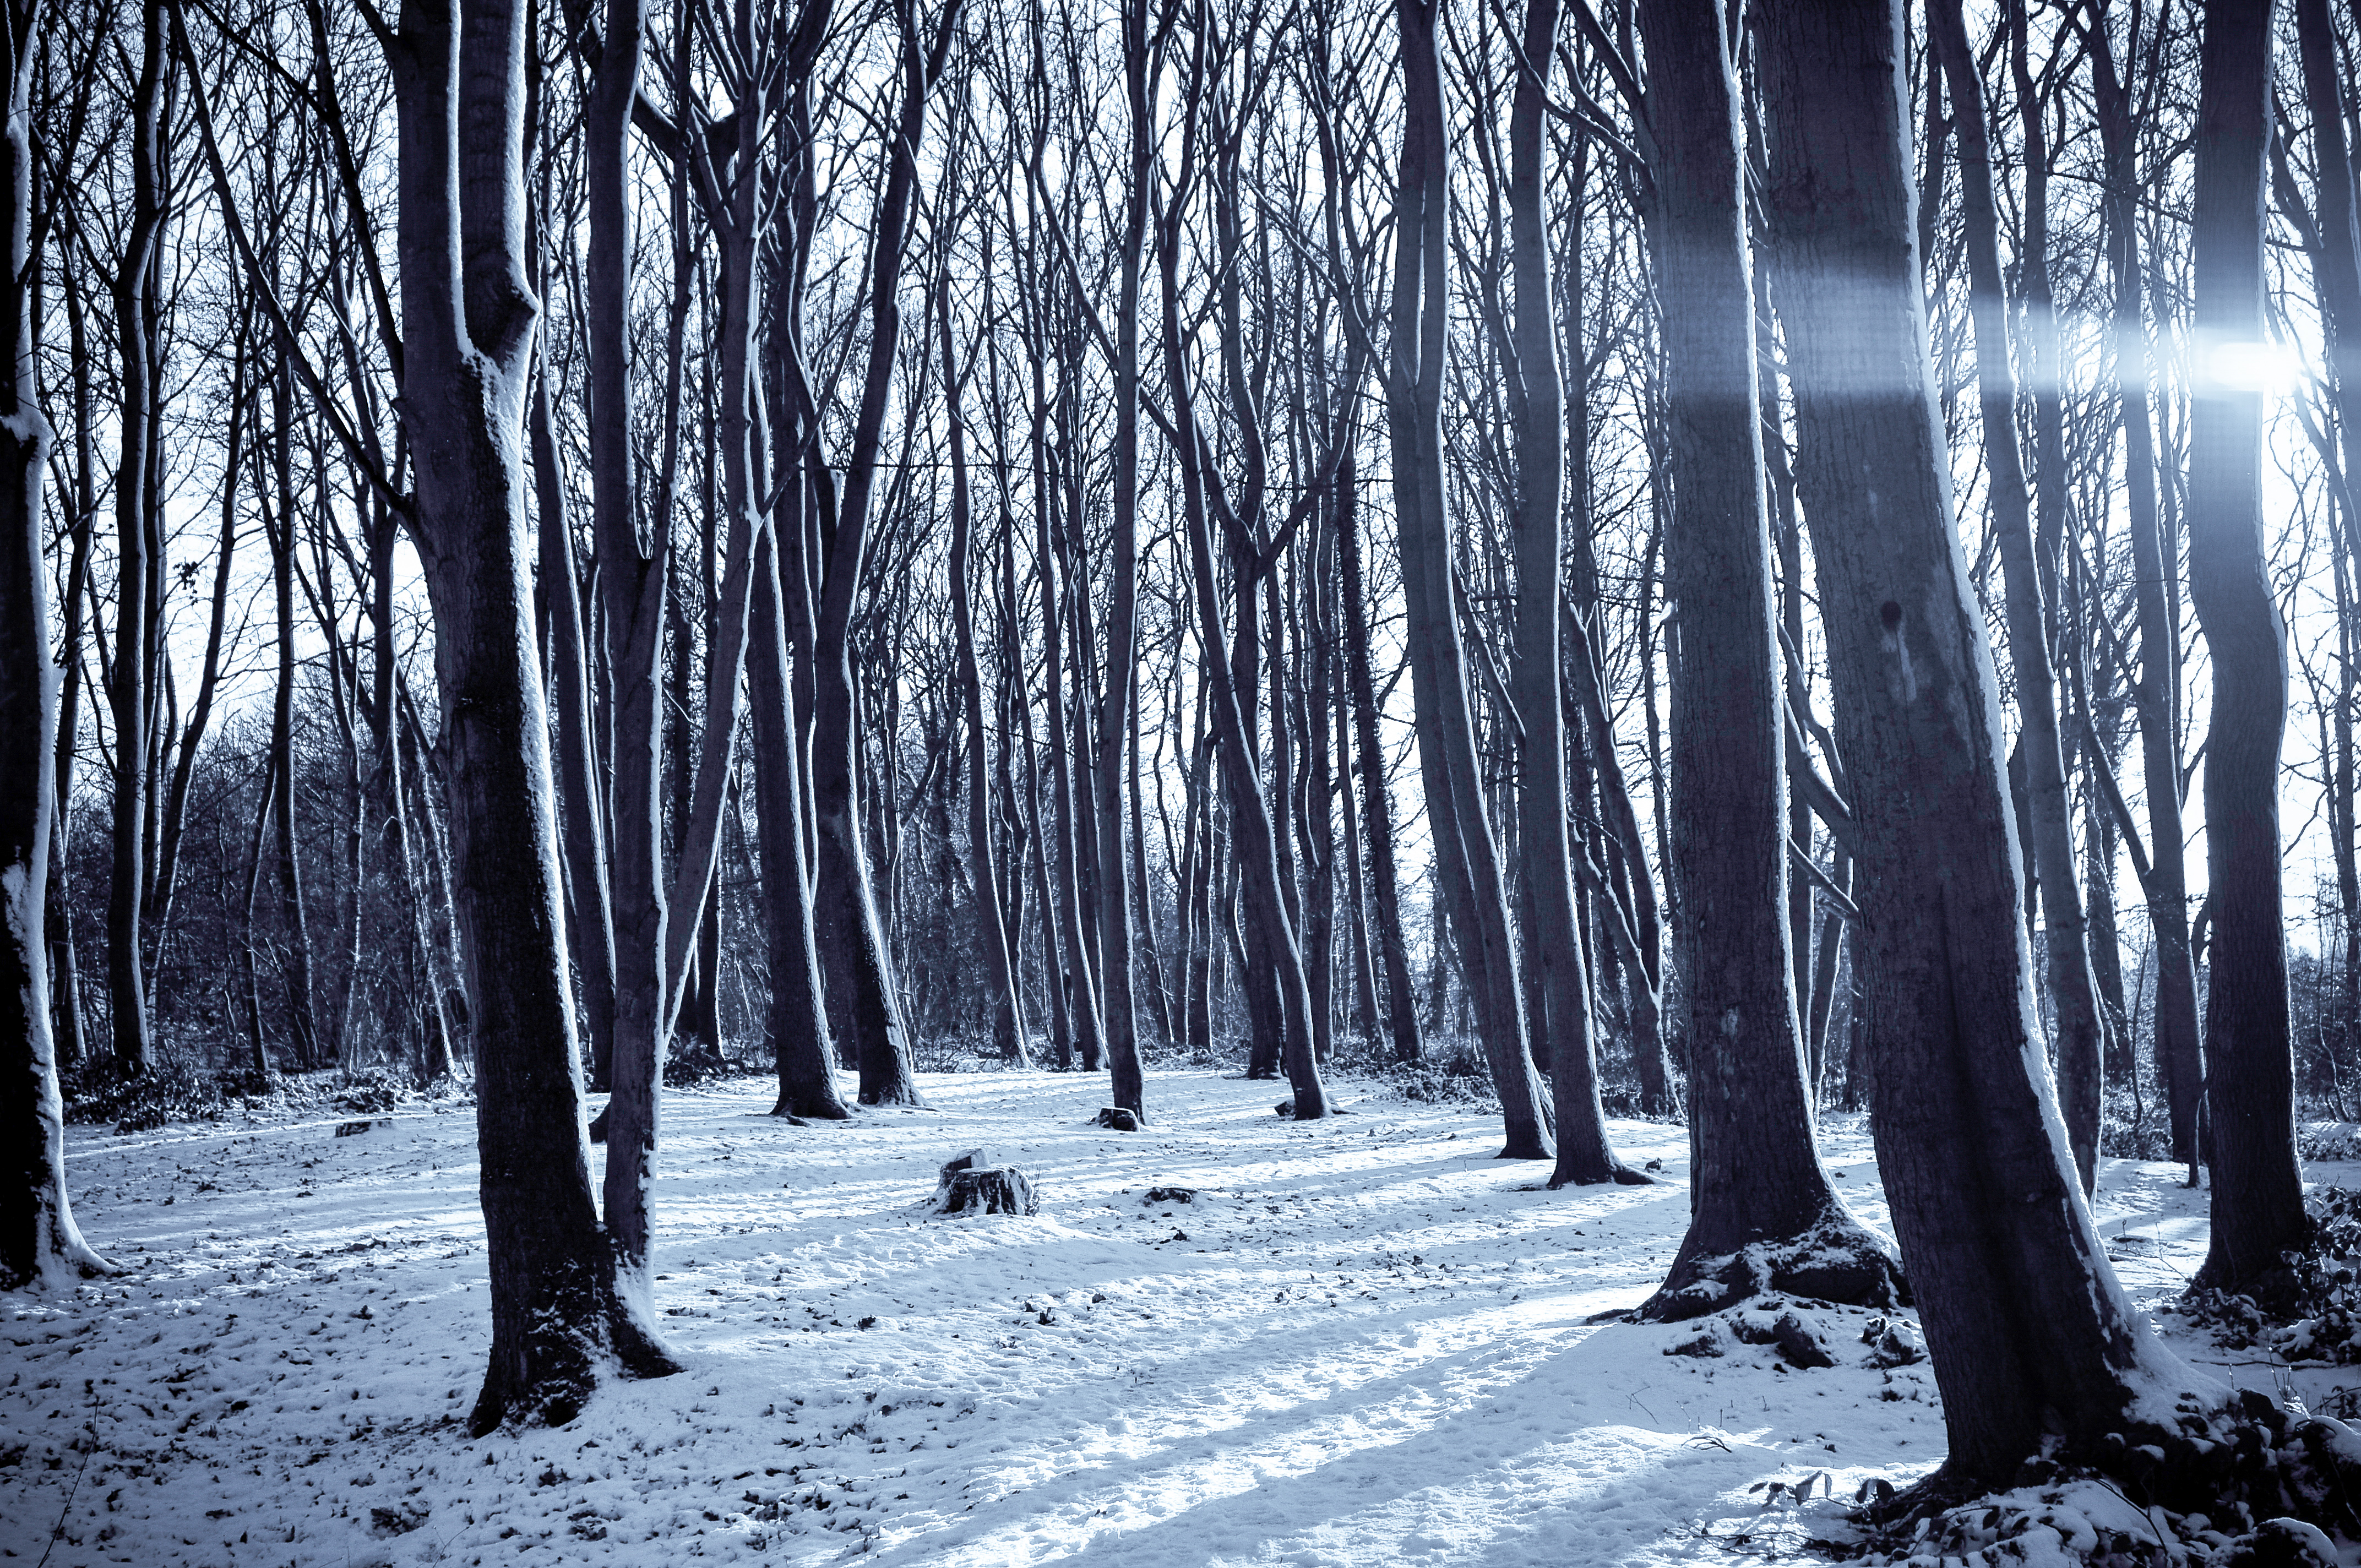 Falling Snow Wallpaper Widescreen Free Stock Photo Of Cold Forest Nature